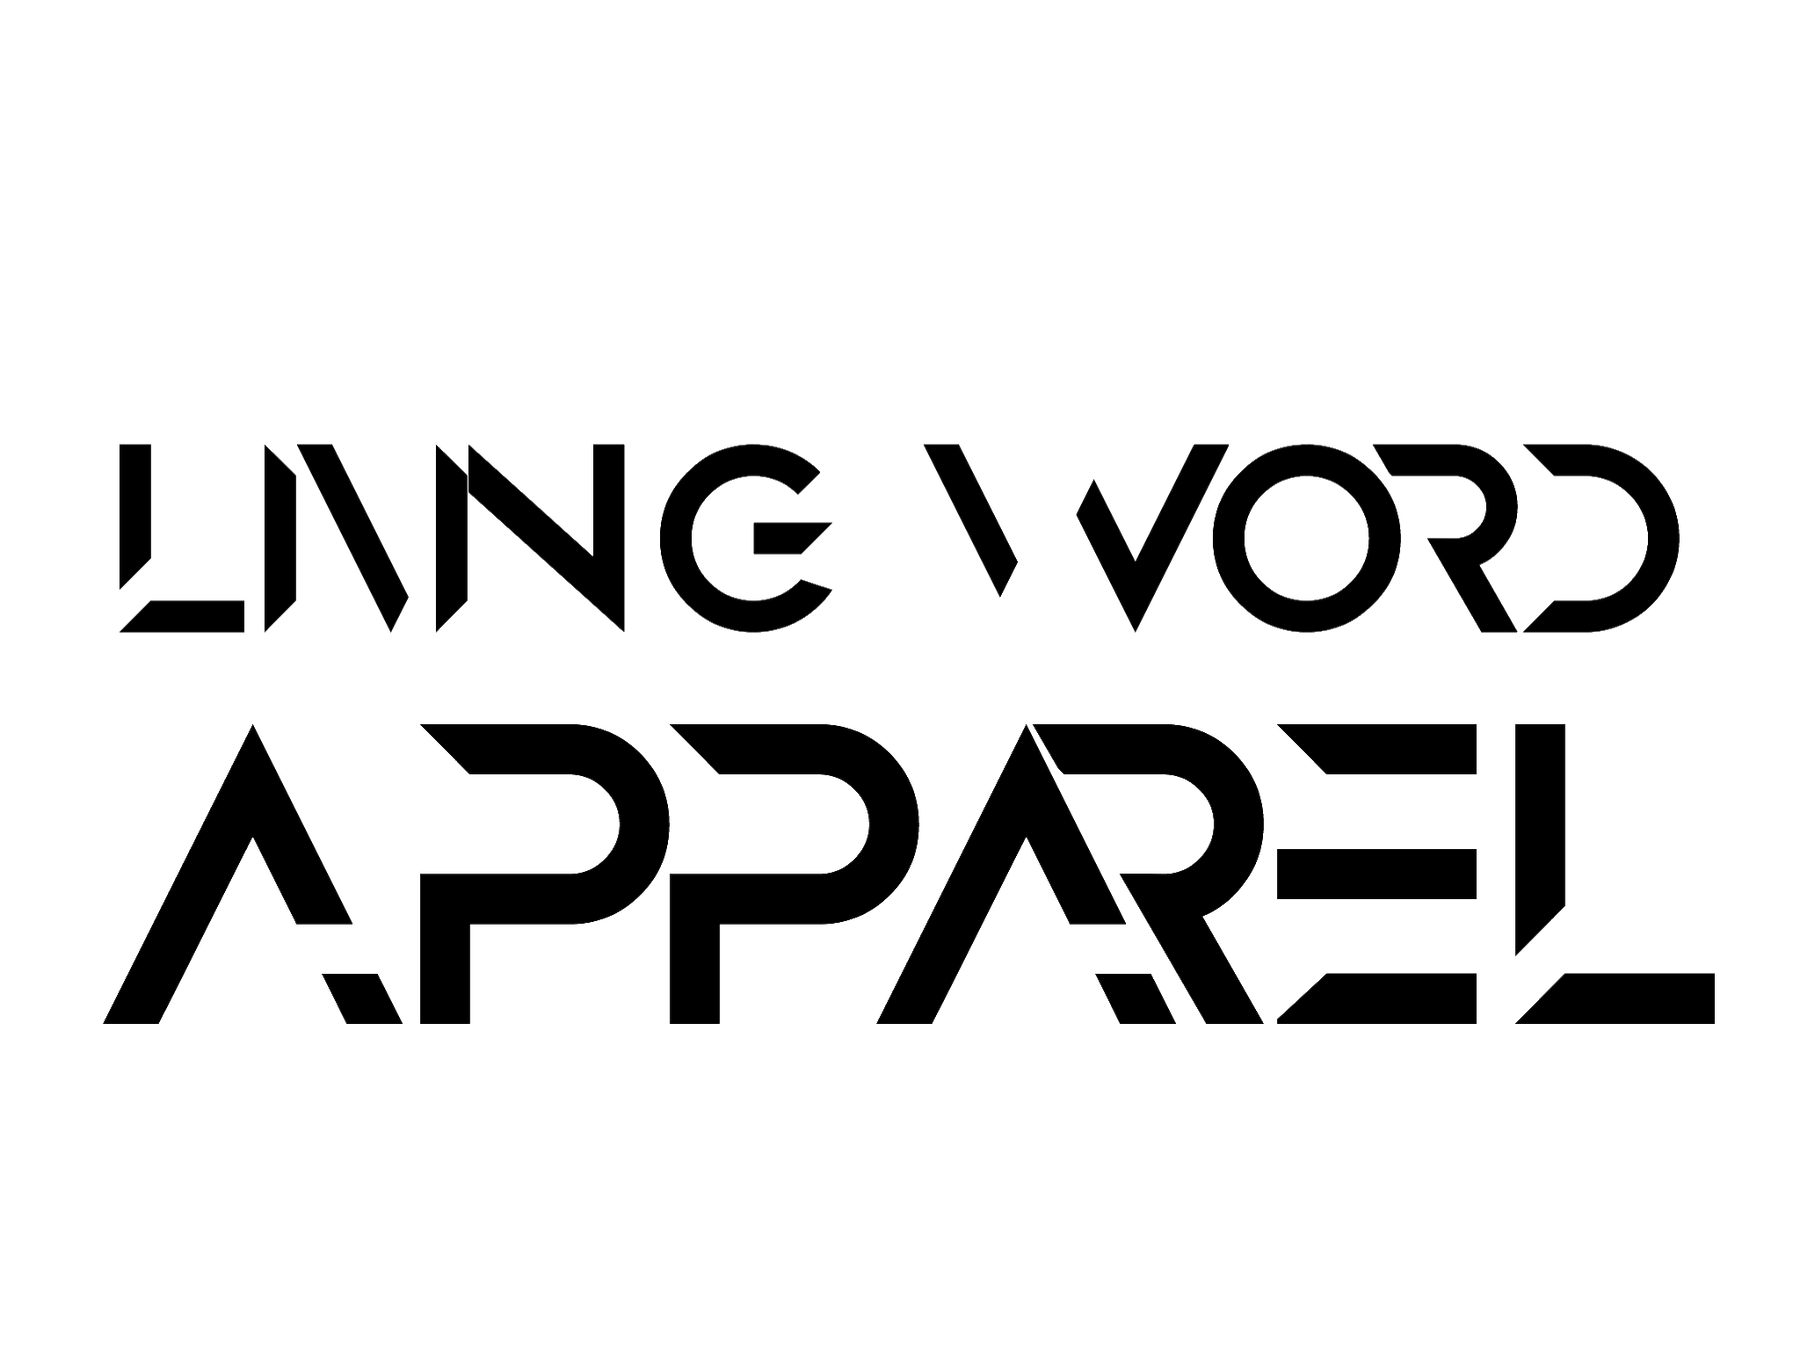 livingwordapparel